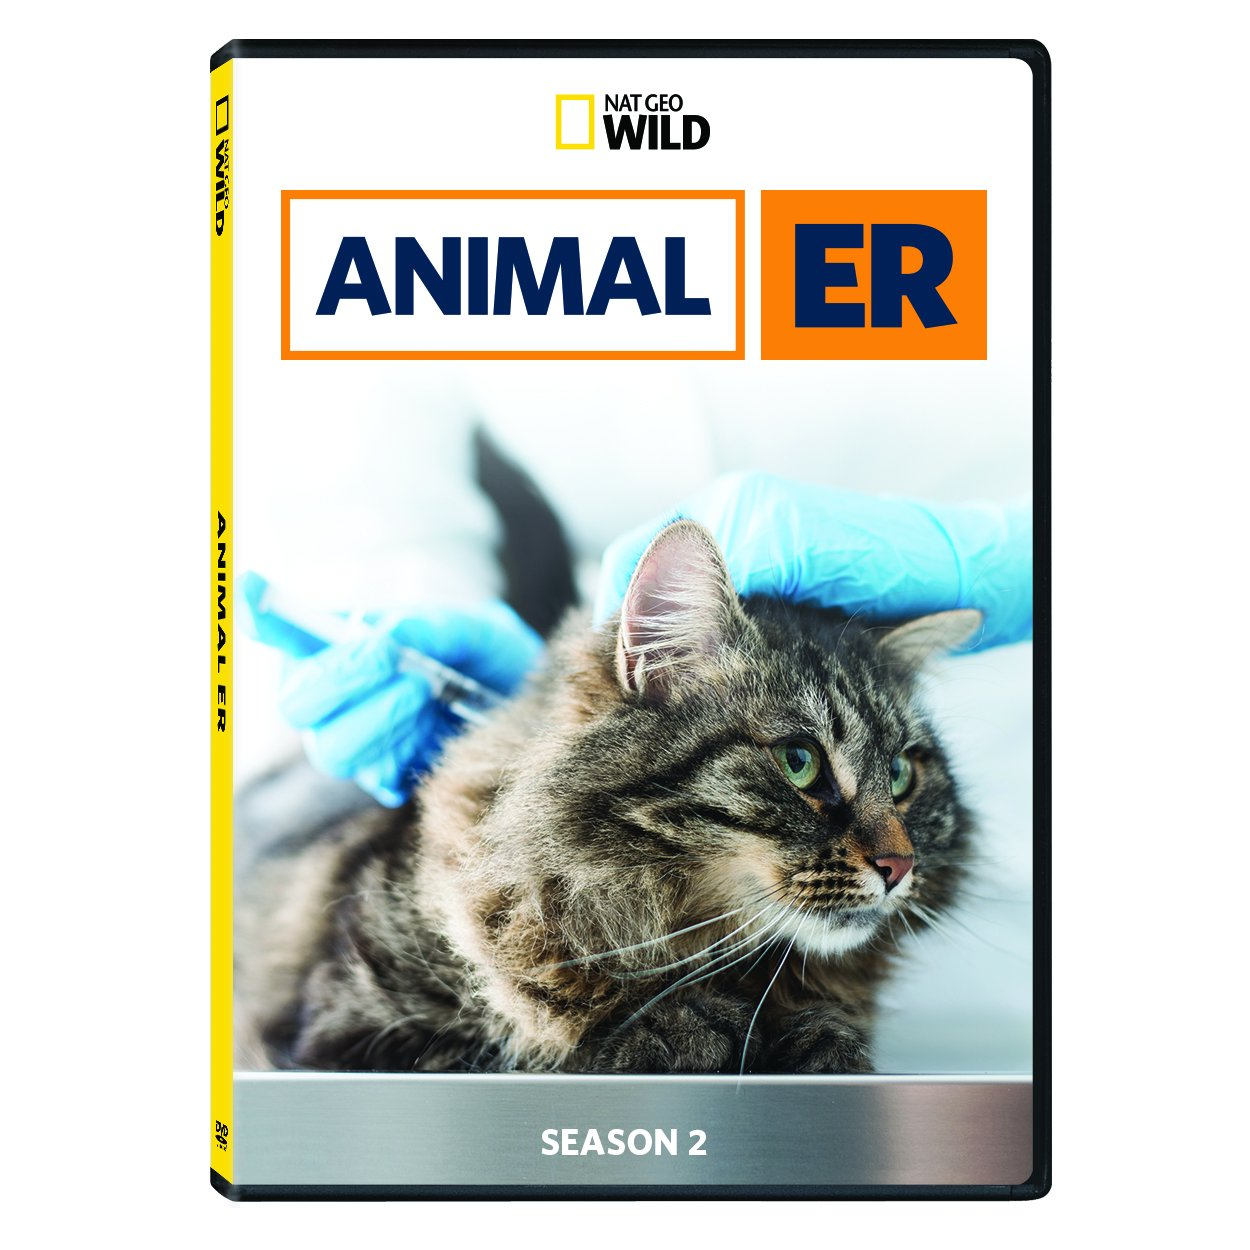 Animal ER Season 2 by National Geographic